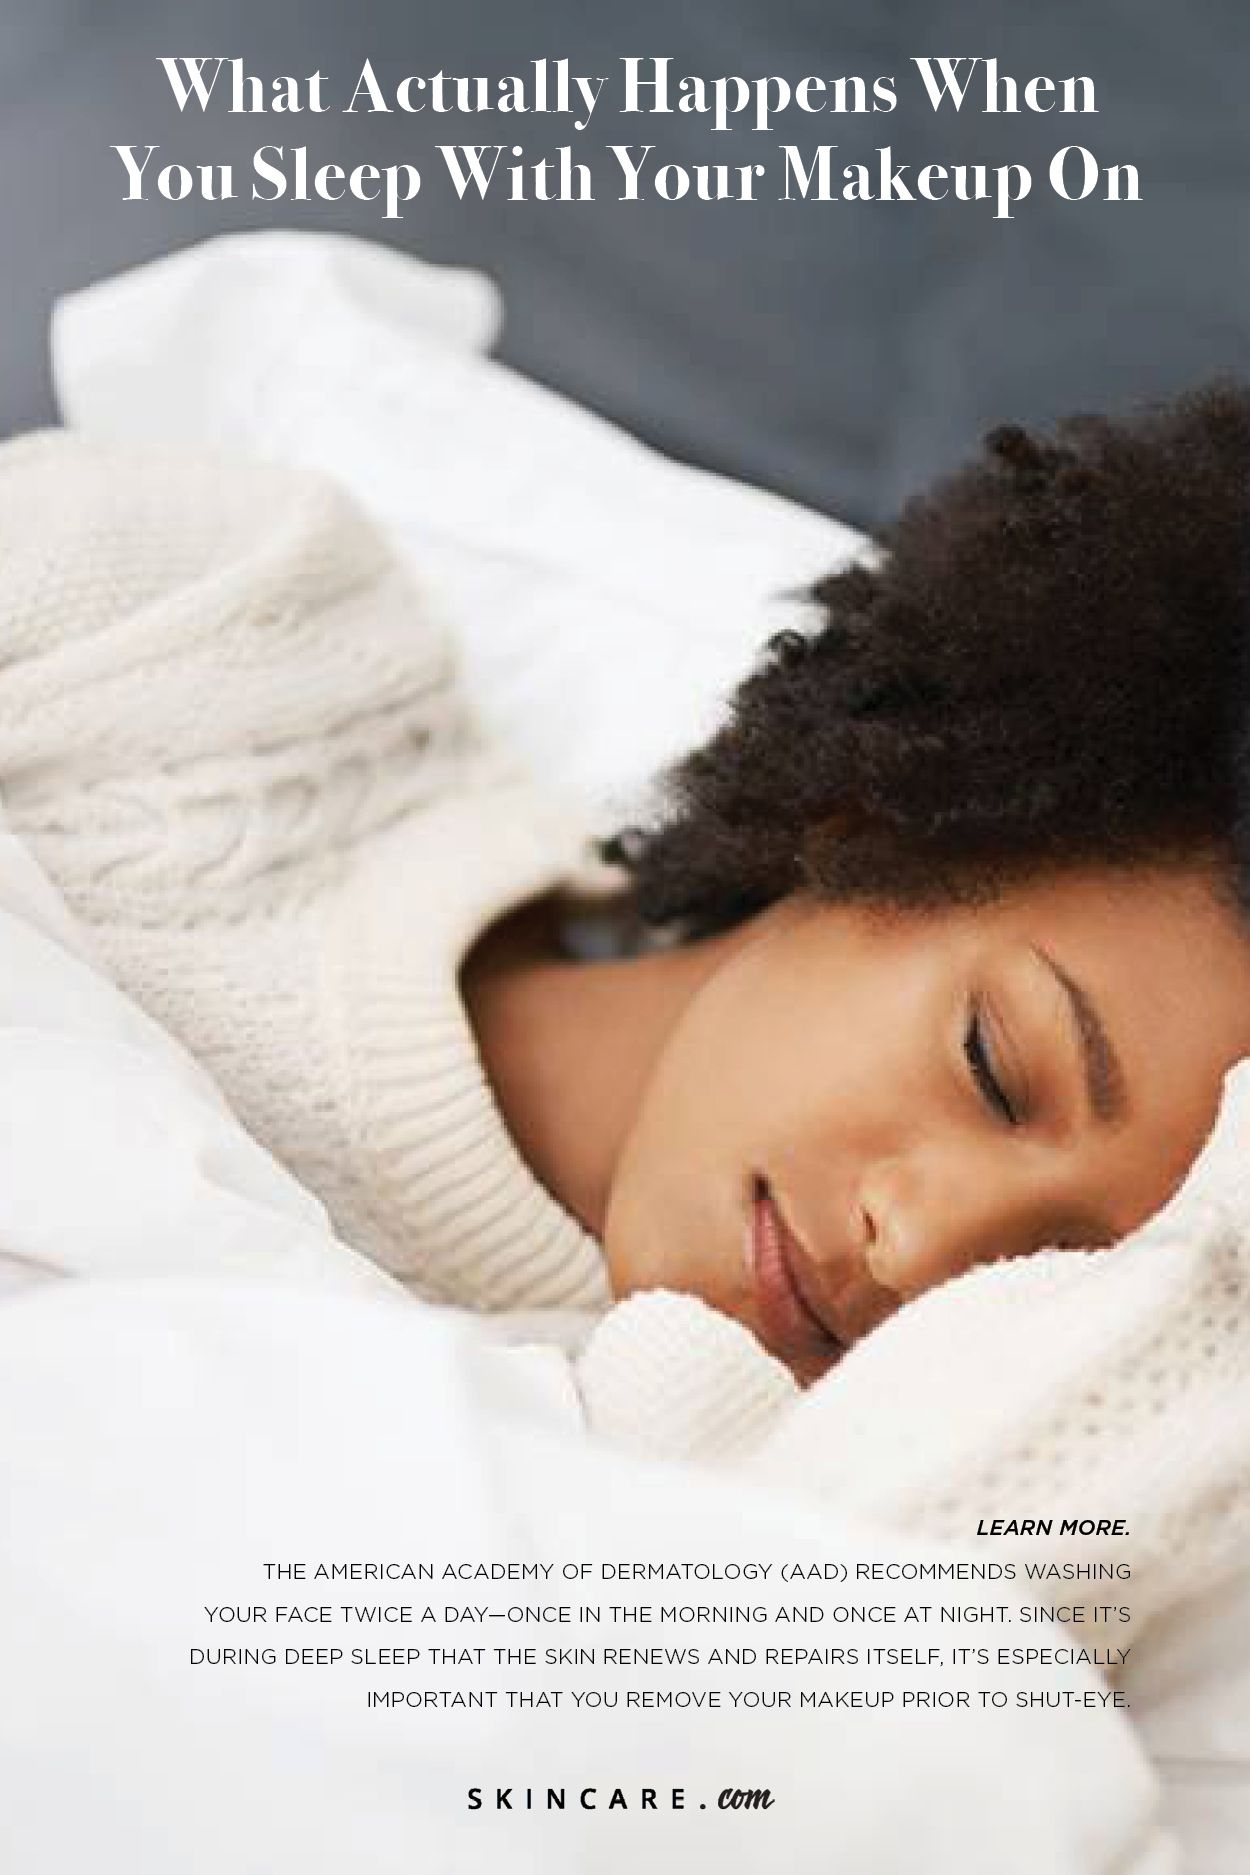 Every time you sleep with makeup on, your skin would yell at you if it could. With all the dirt, impurities and debris that build up in your pores, ...